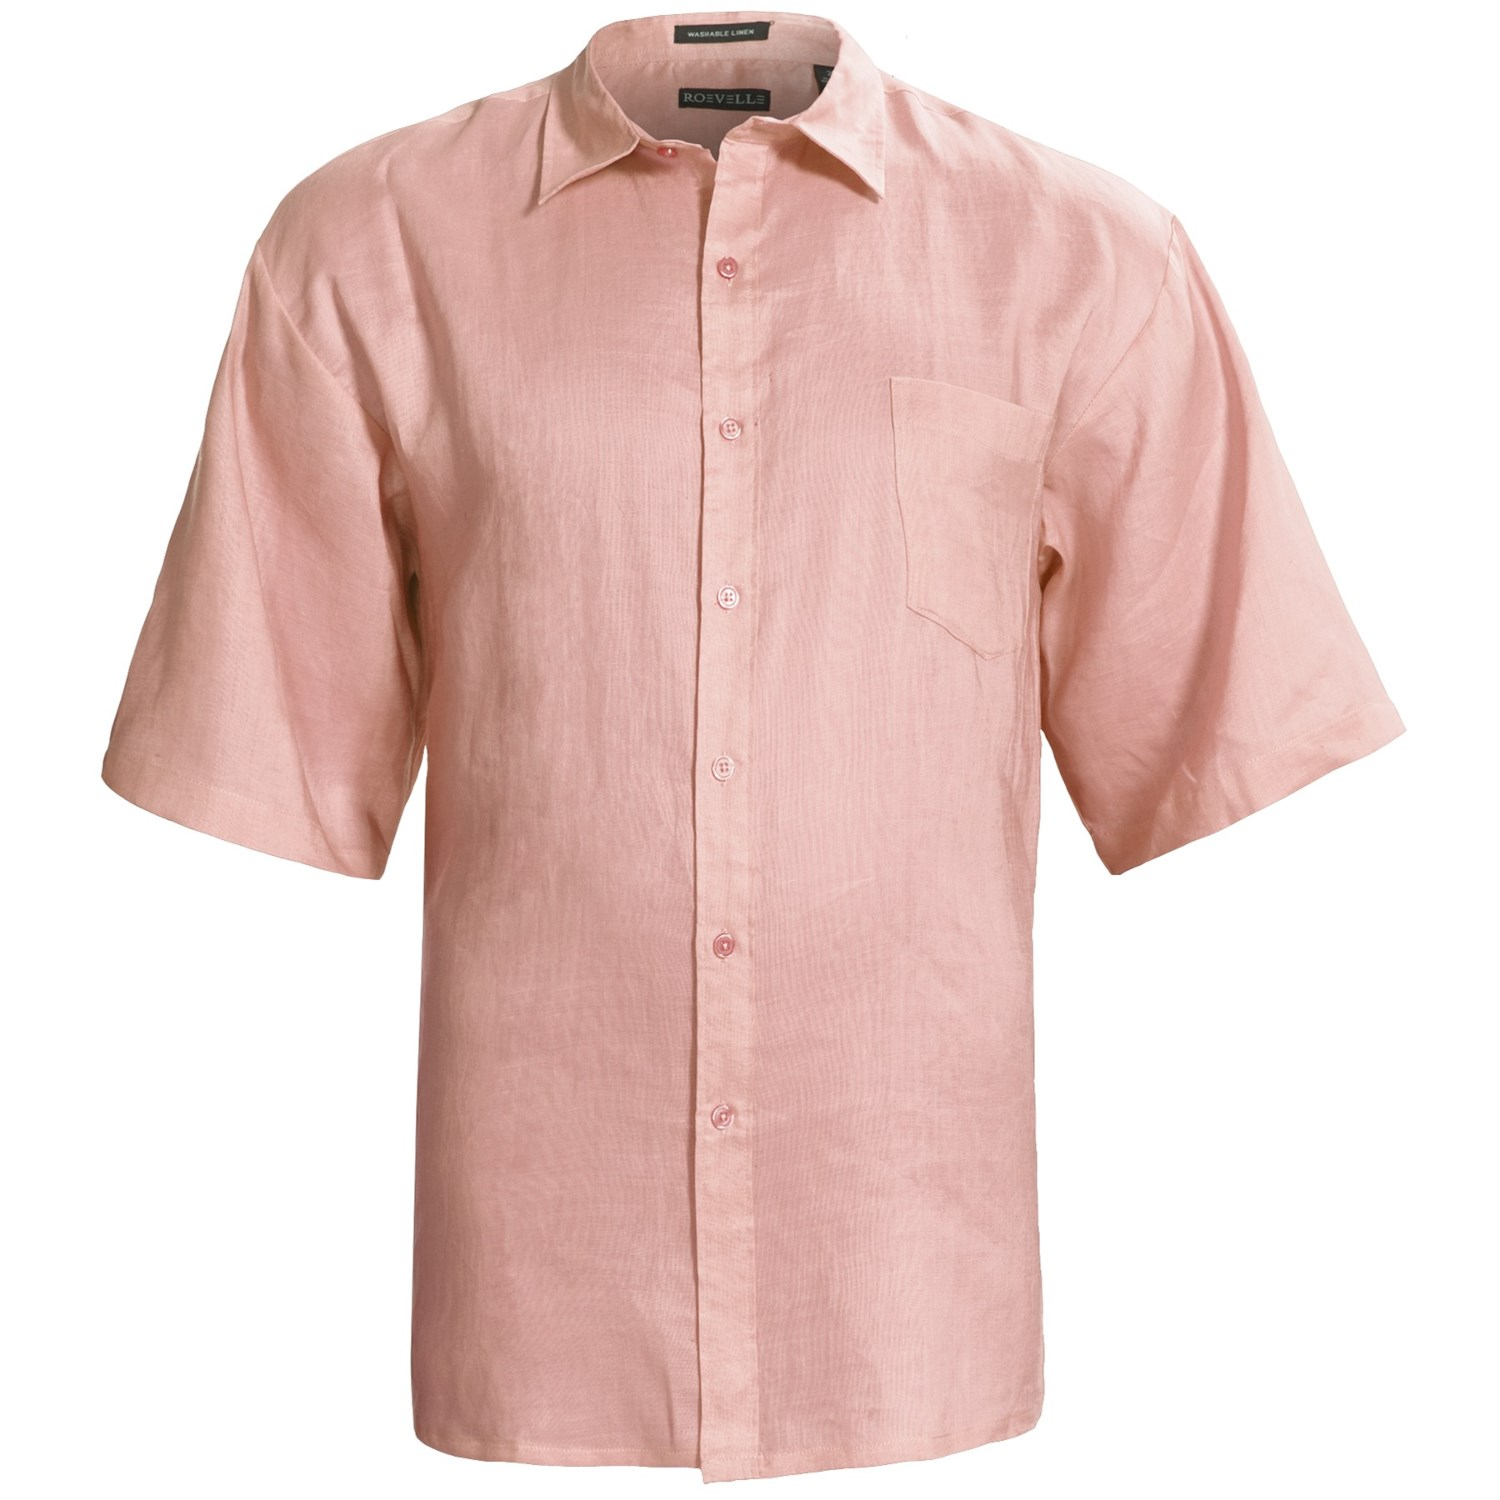 Washable linen shirt short sleeve for big and tall men for Design your own t shirt big and tall